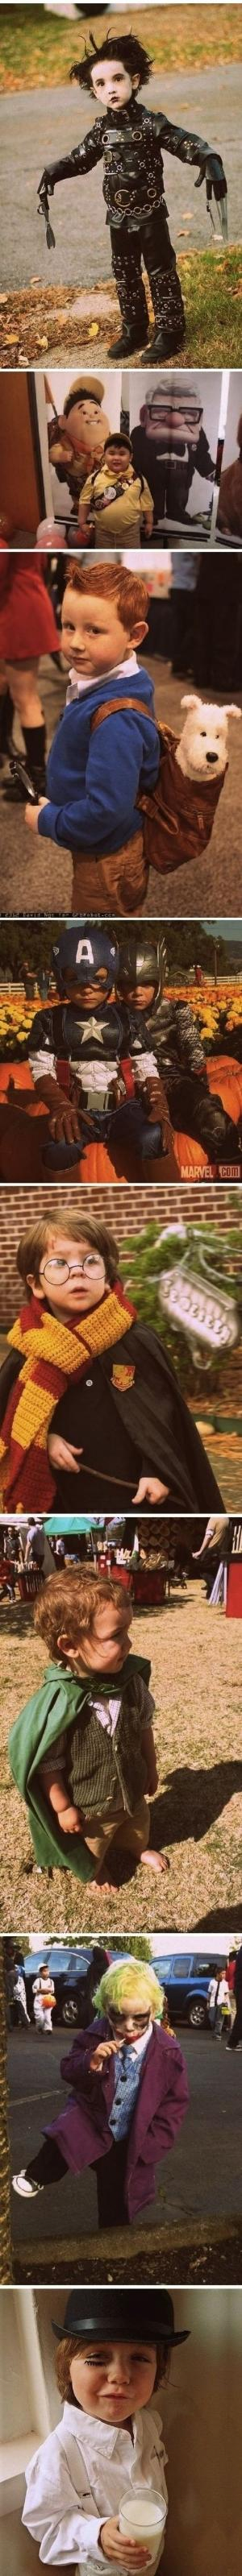 cool kid costumes by Rebeccalennox & cool kid costumes by Rebeccalennox   HALLOWEEN TOWN!   Pinterest ...